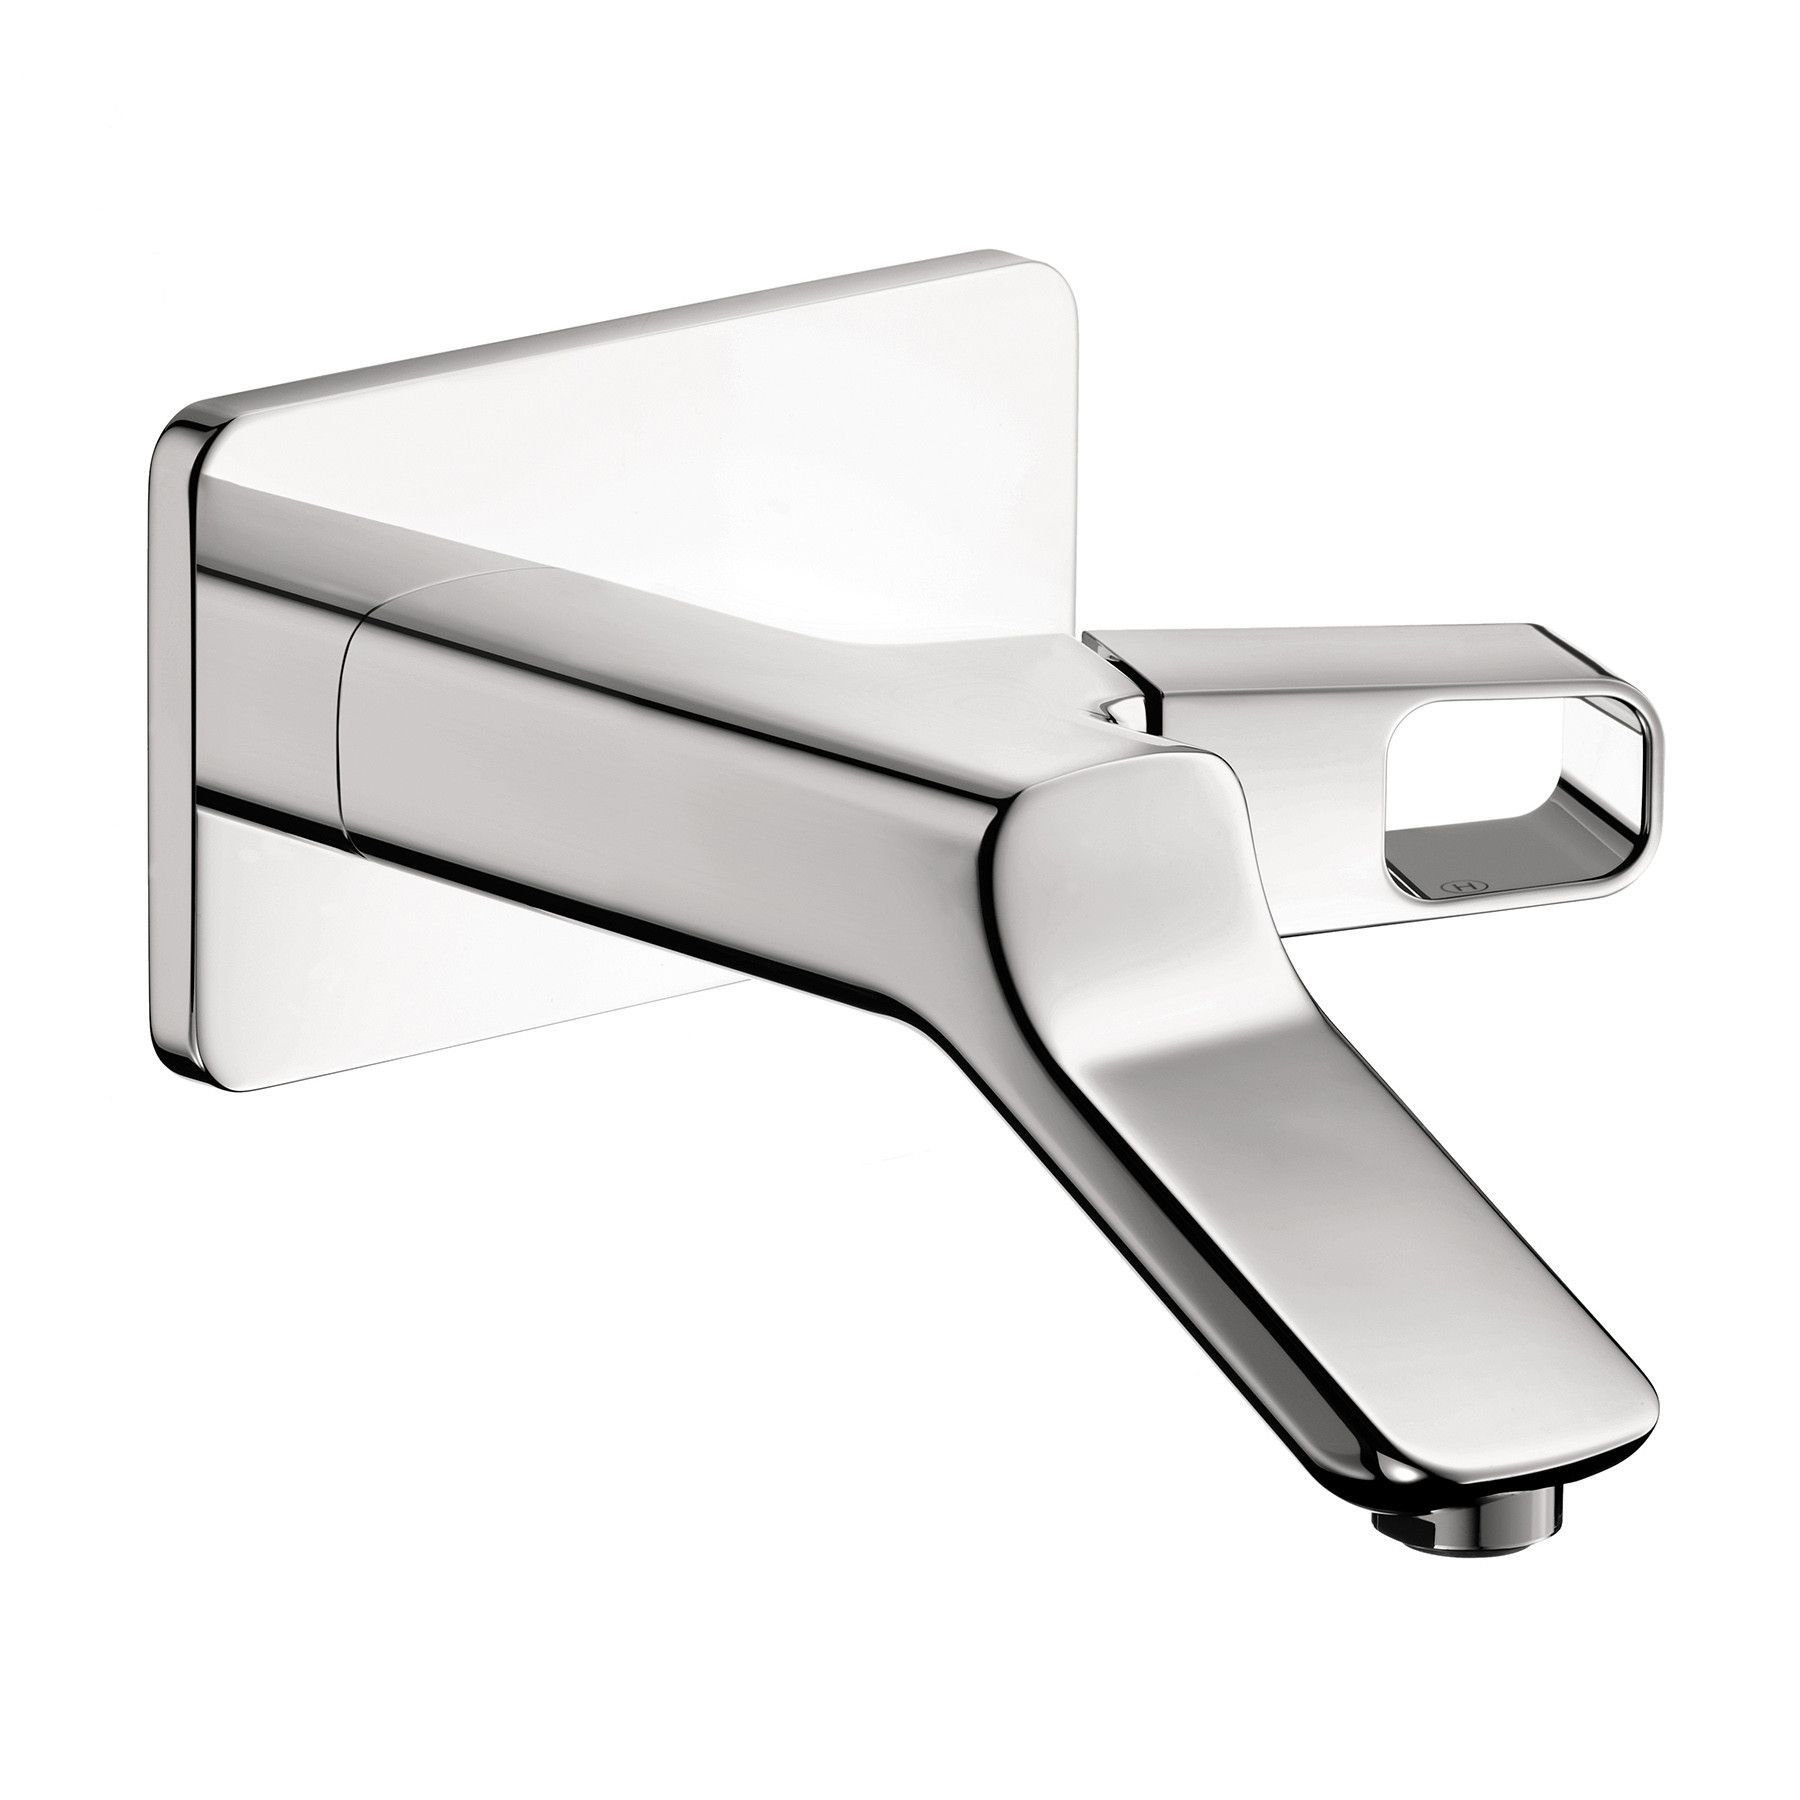 Hansgrohe 11026001 Chrome Axor Urquiola Bathroom Faucet Wall Mount ...